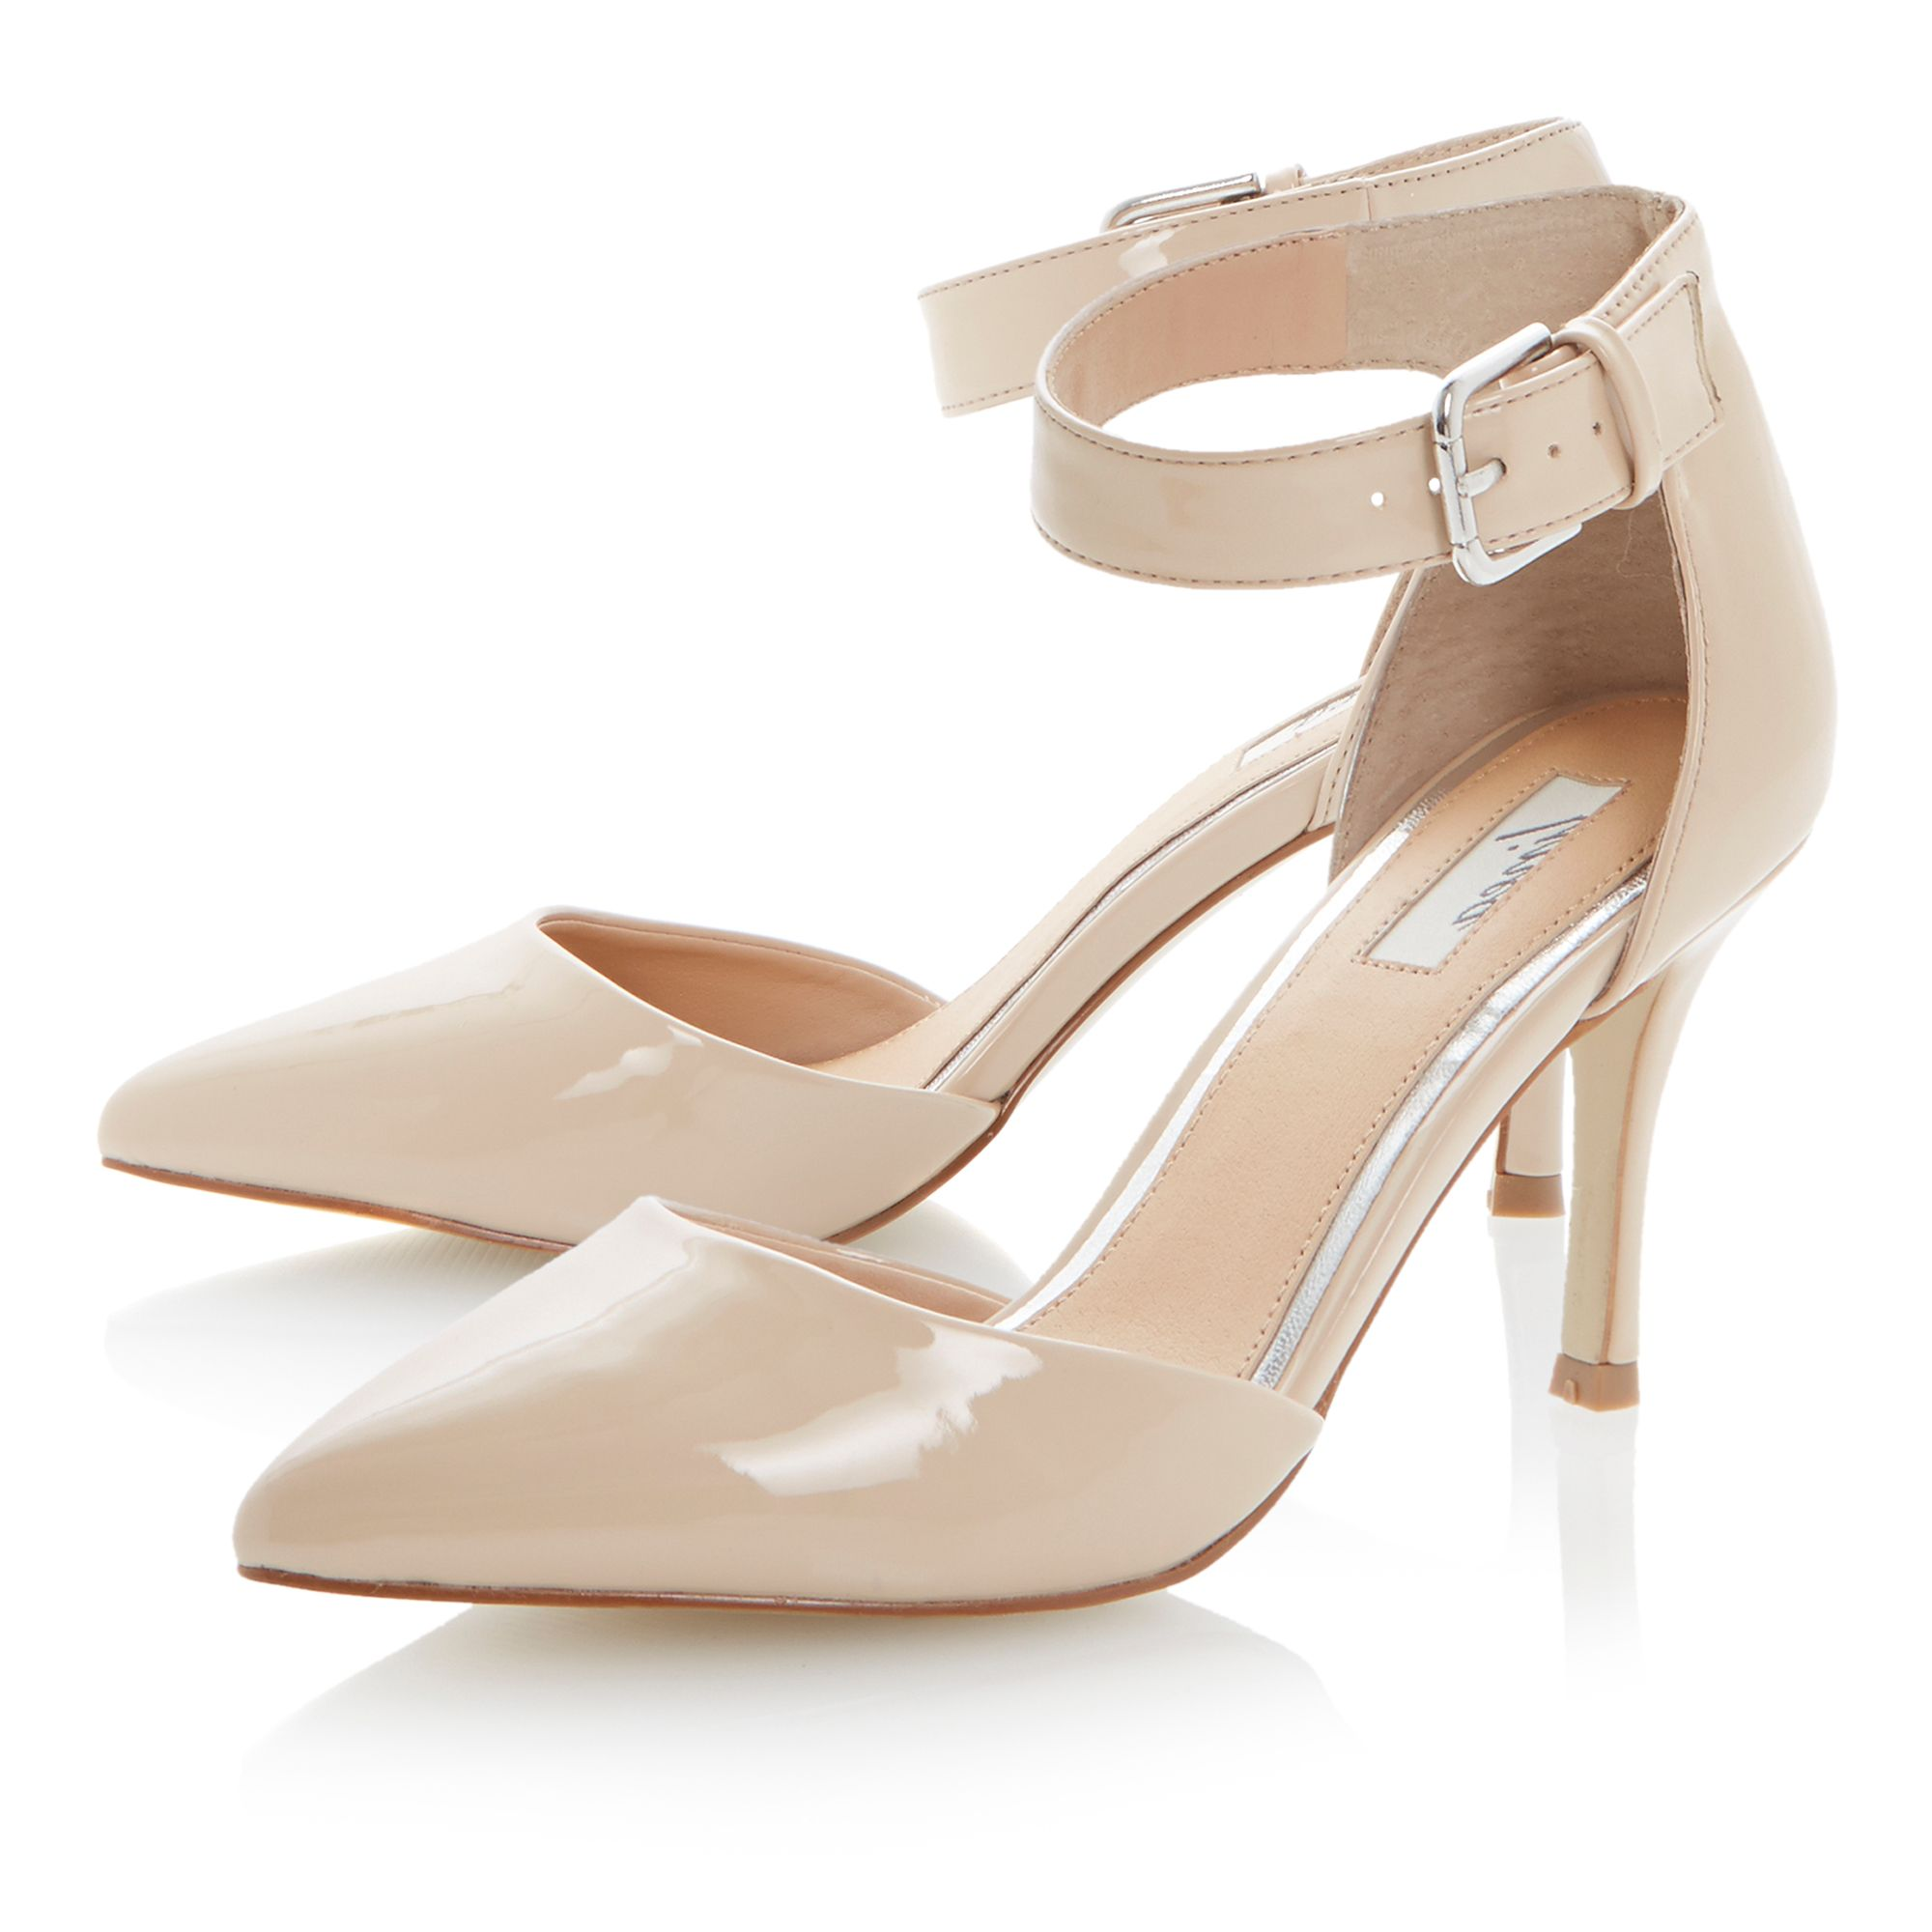 Ciabatta pointed toe stiletto court shoes